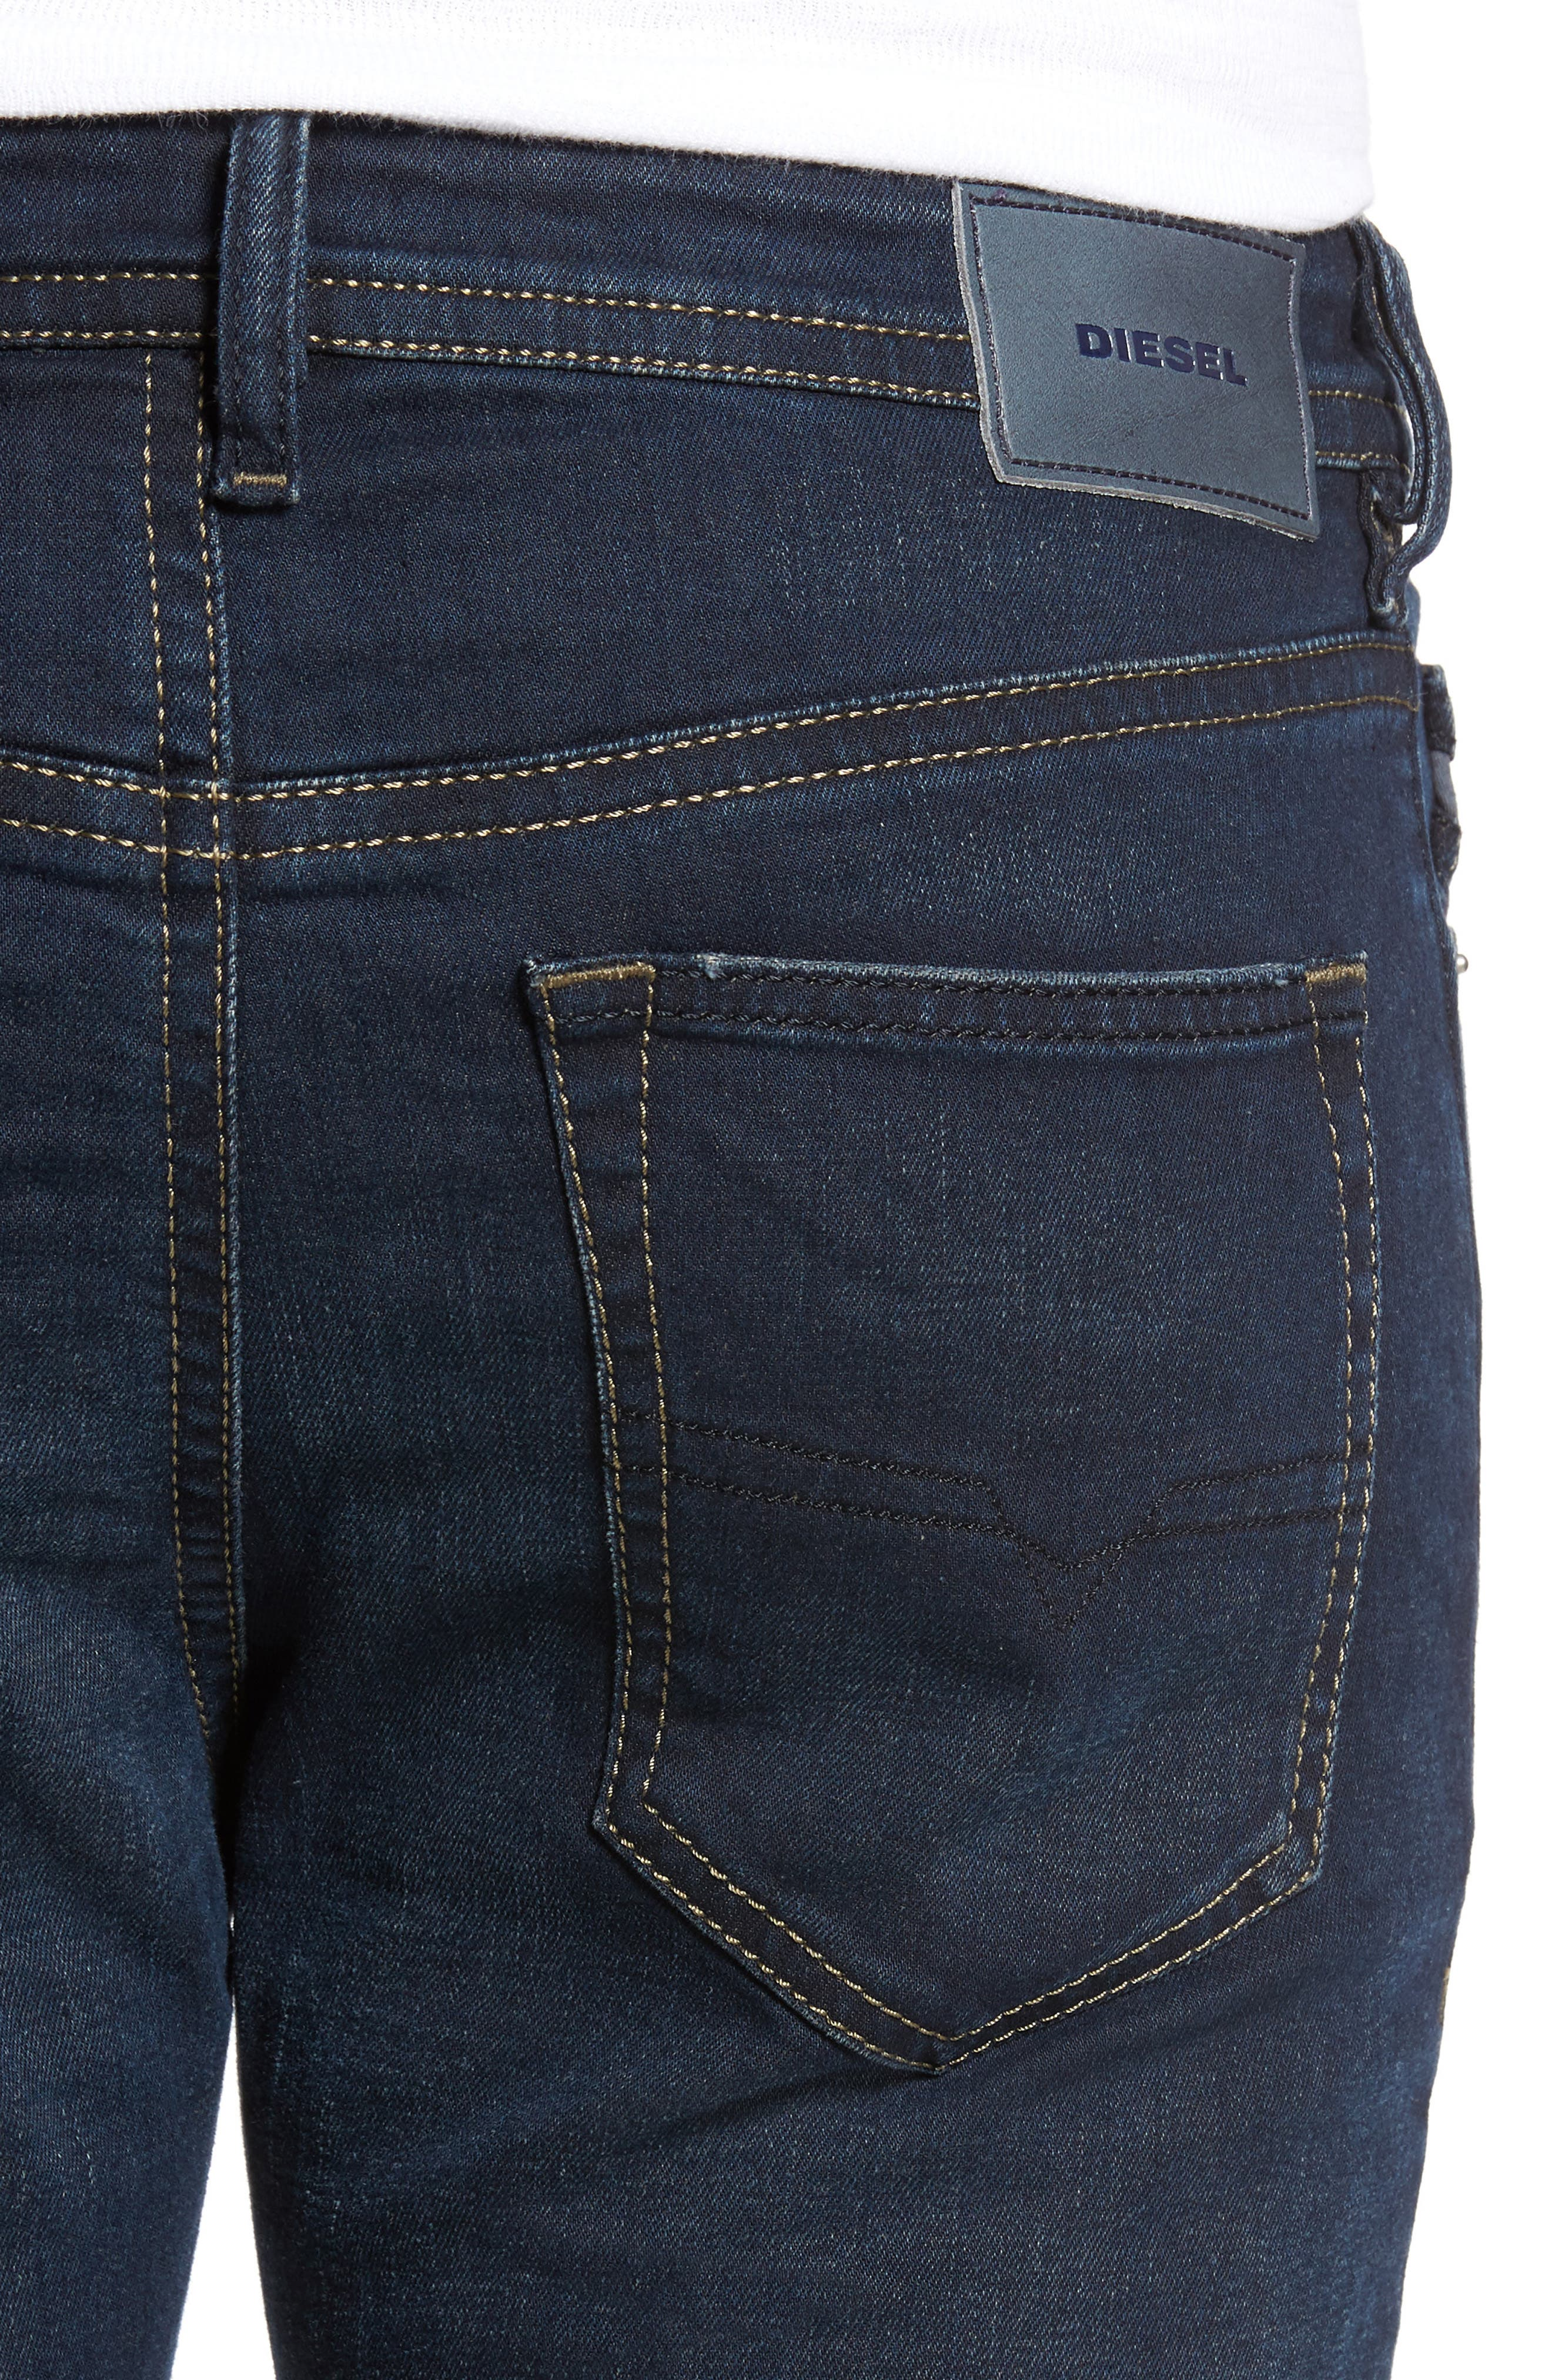 Buster Slim Straight Fit Jeans,                             Alternate thumbnail 4, color,                             Denim